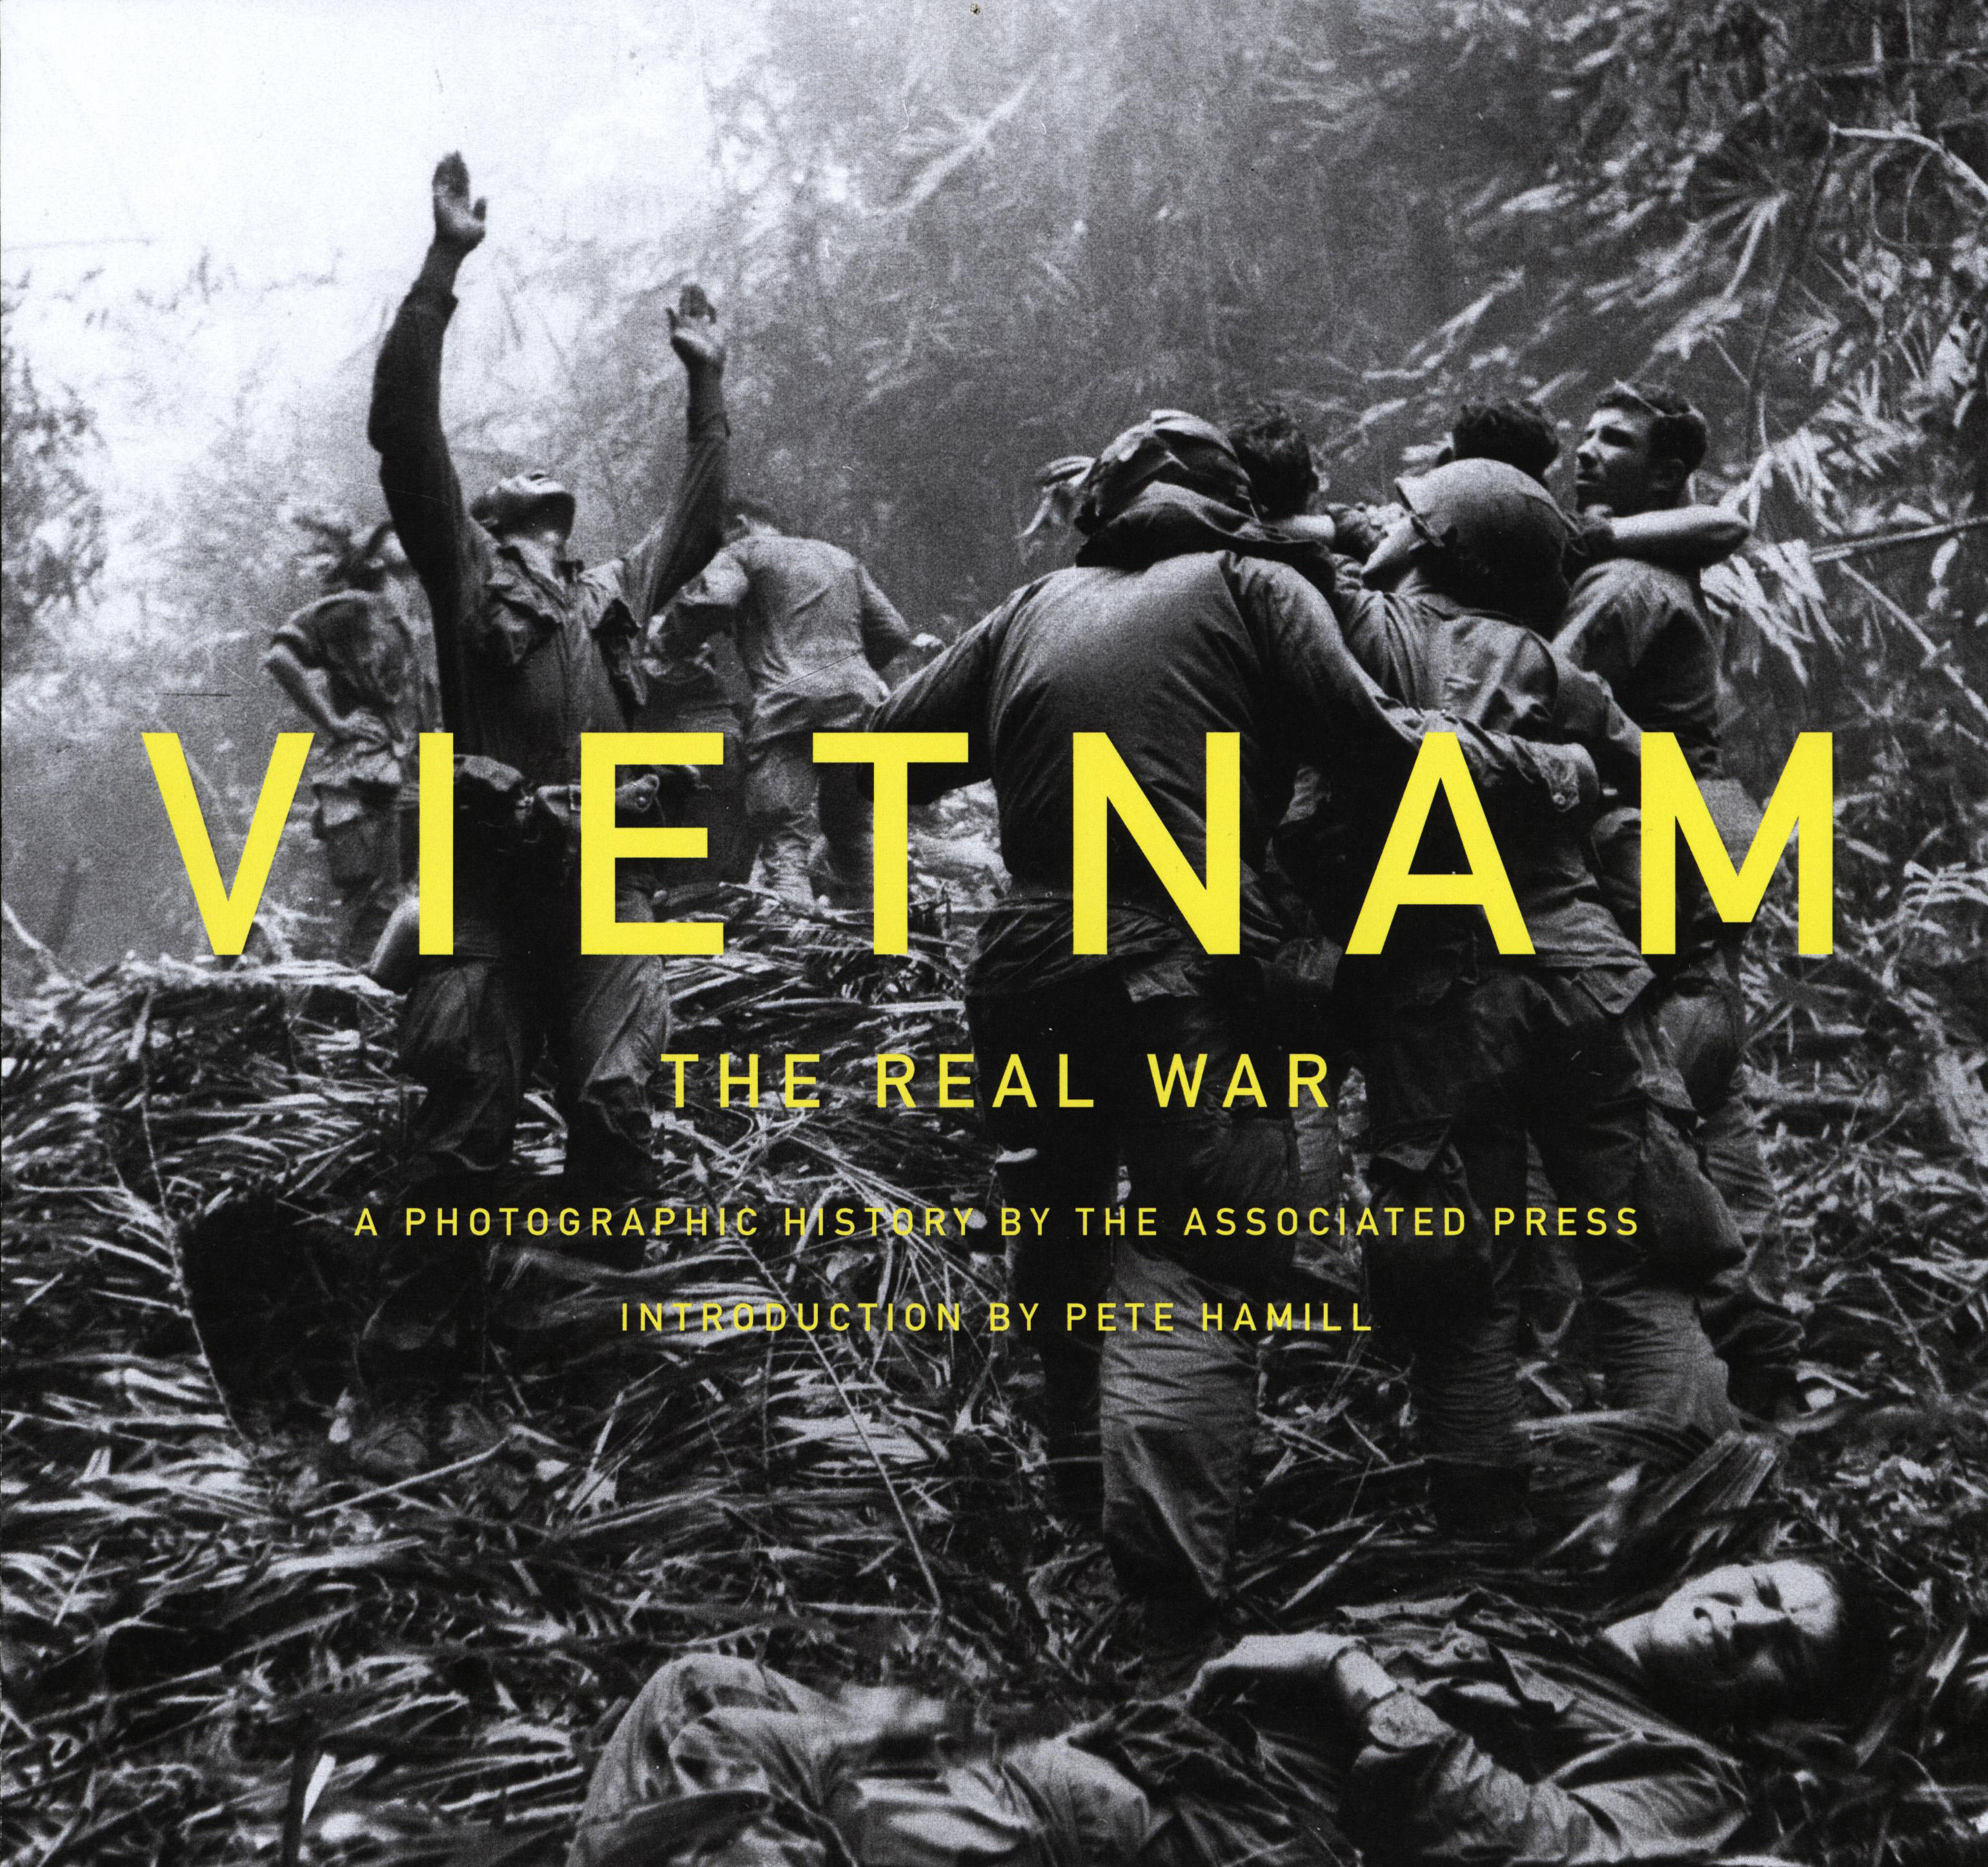 Vietnam The Real War Photo History By Ap To Publish Oct 1